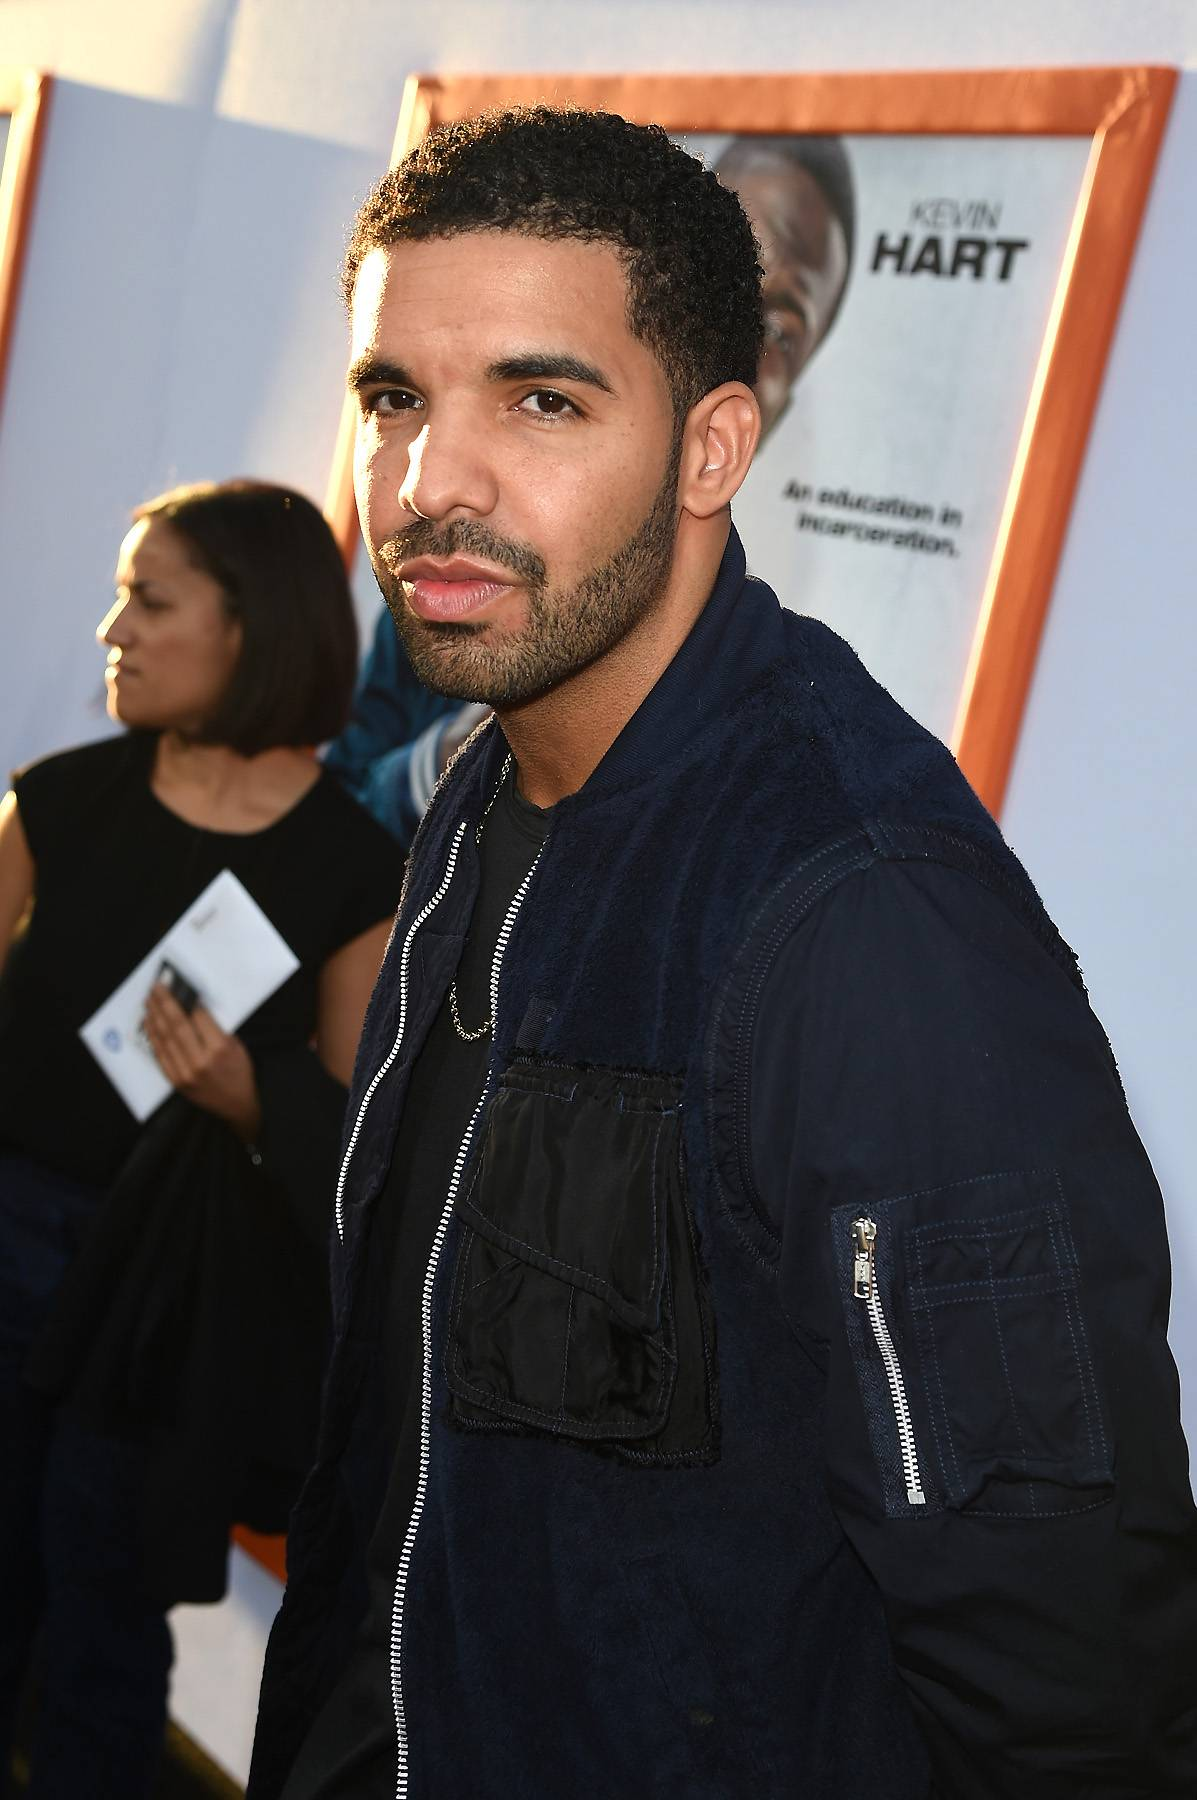 """Drake, 'The Winners' - While some clown Drake for being an emotional rapper, you have to admit a song about his grandma is just so precious. He raps, """"Yeah, and in the name of Evelyn Sher / I'll forever forgive anybody that never was there / For me, no other woman could ever compare / My angel, I hope heaven's prepared for whenever you there.""""  (Photo: Kevin Winter/Getty Images)"""